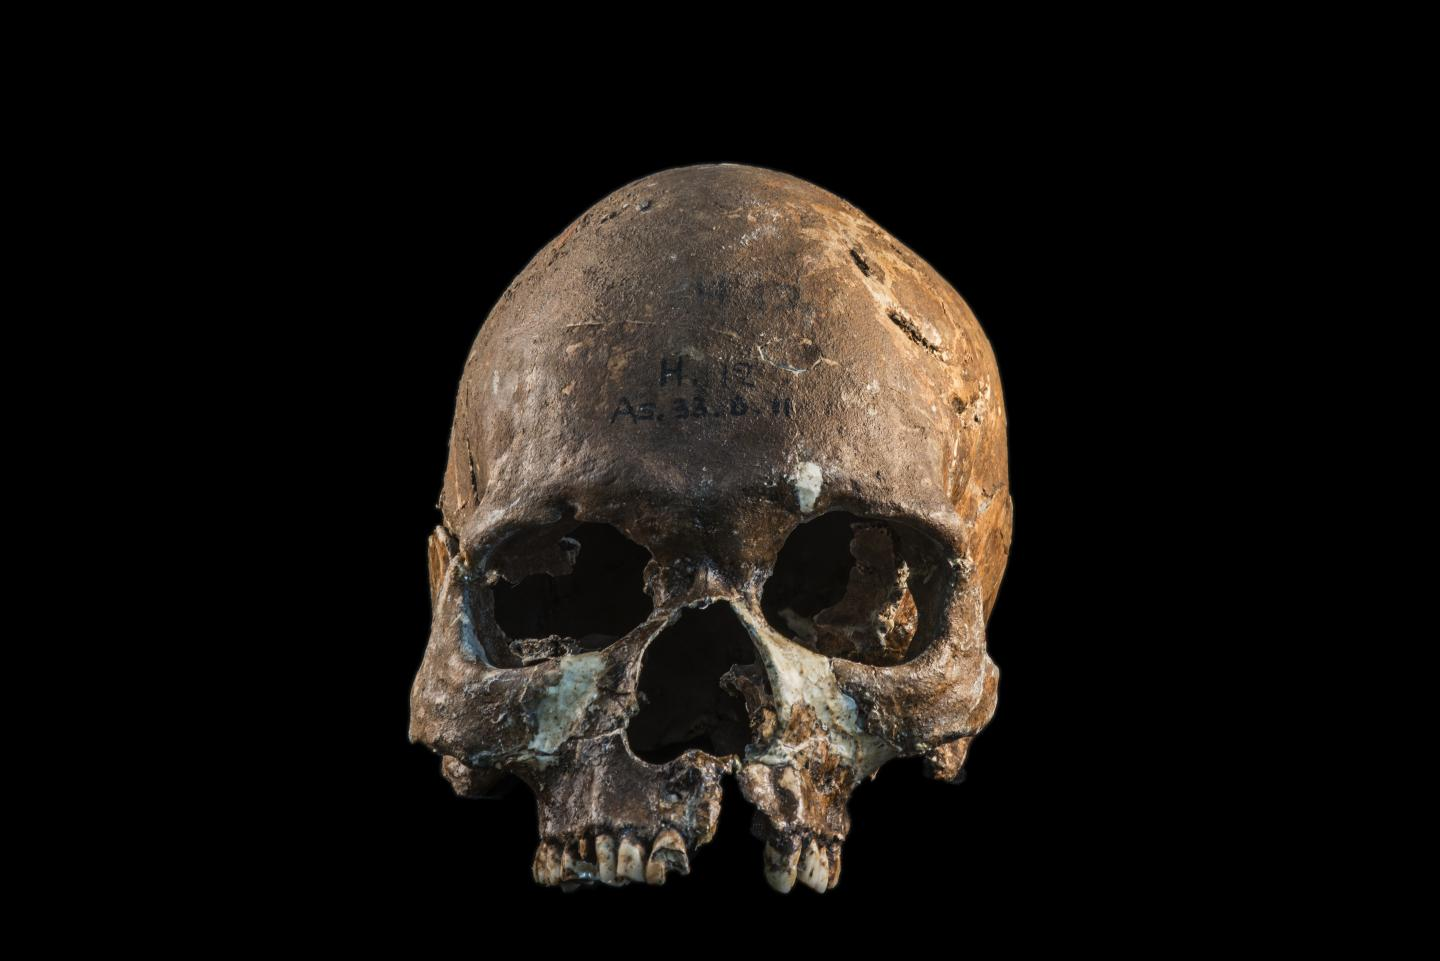 Skull from a Hòabìnhian person from Gua Cha archaeological site, Malaysian Peninsula. / Credit: Fabio Lahr